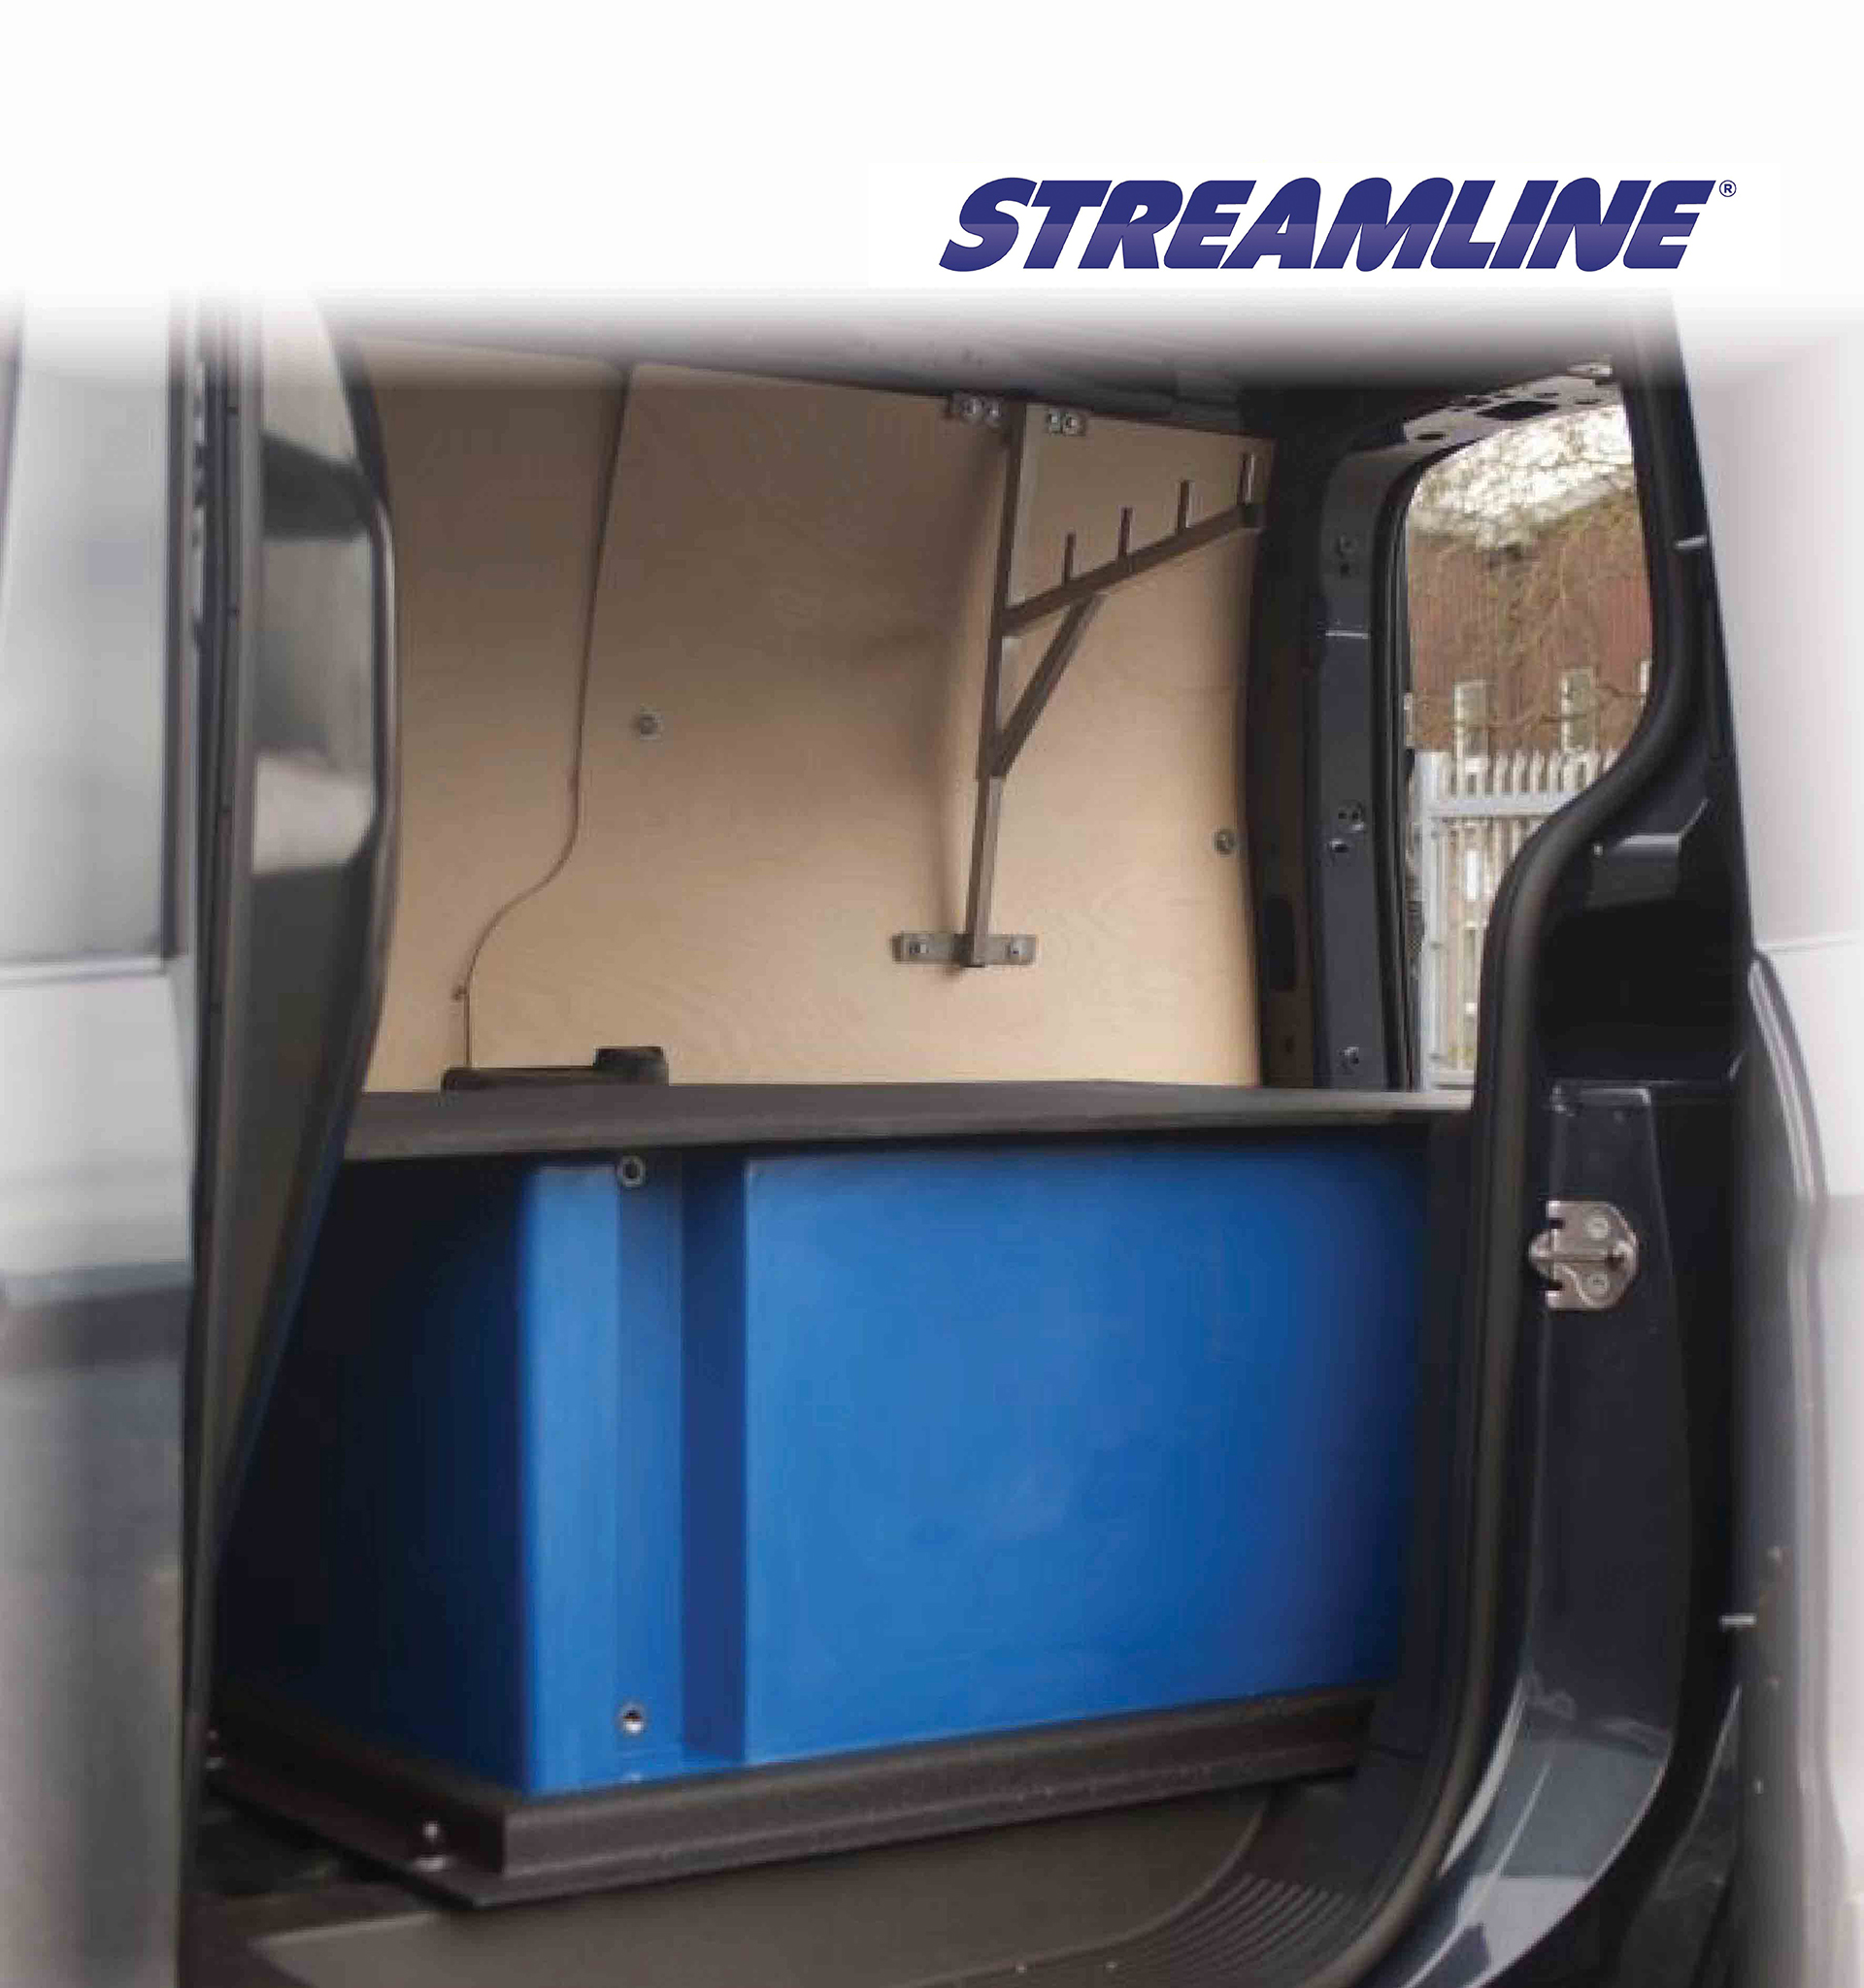 Streamline Smart Tank Window Cleaning Systems from 400 – 1000 Litres